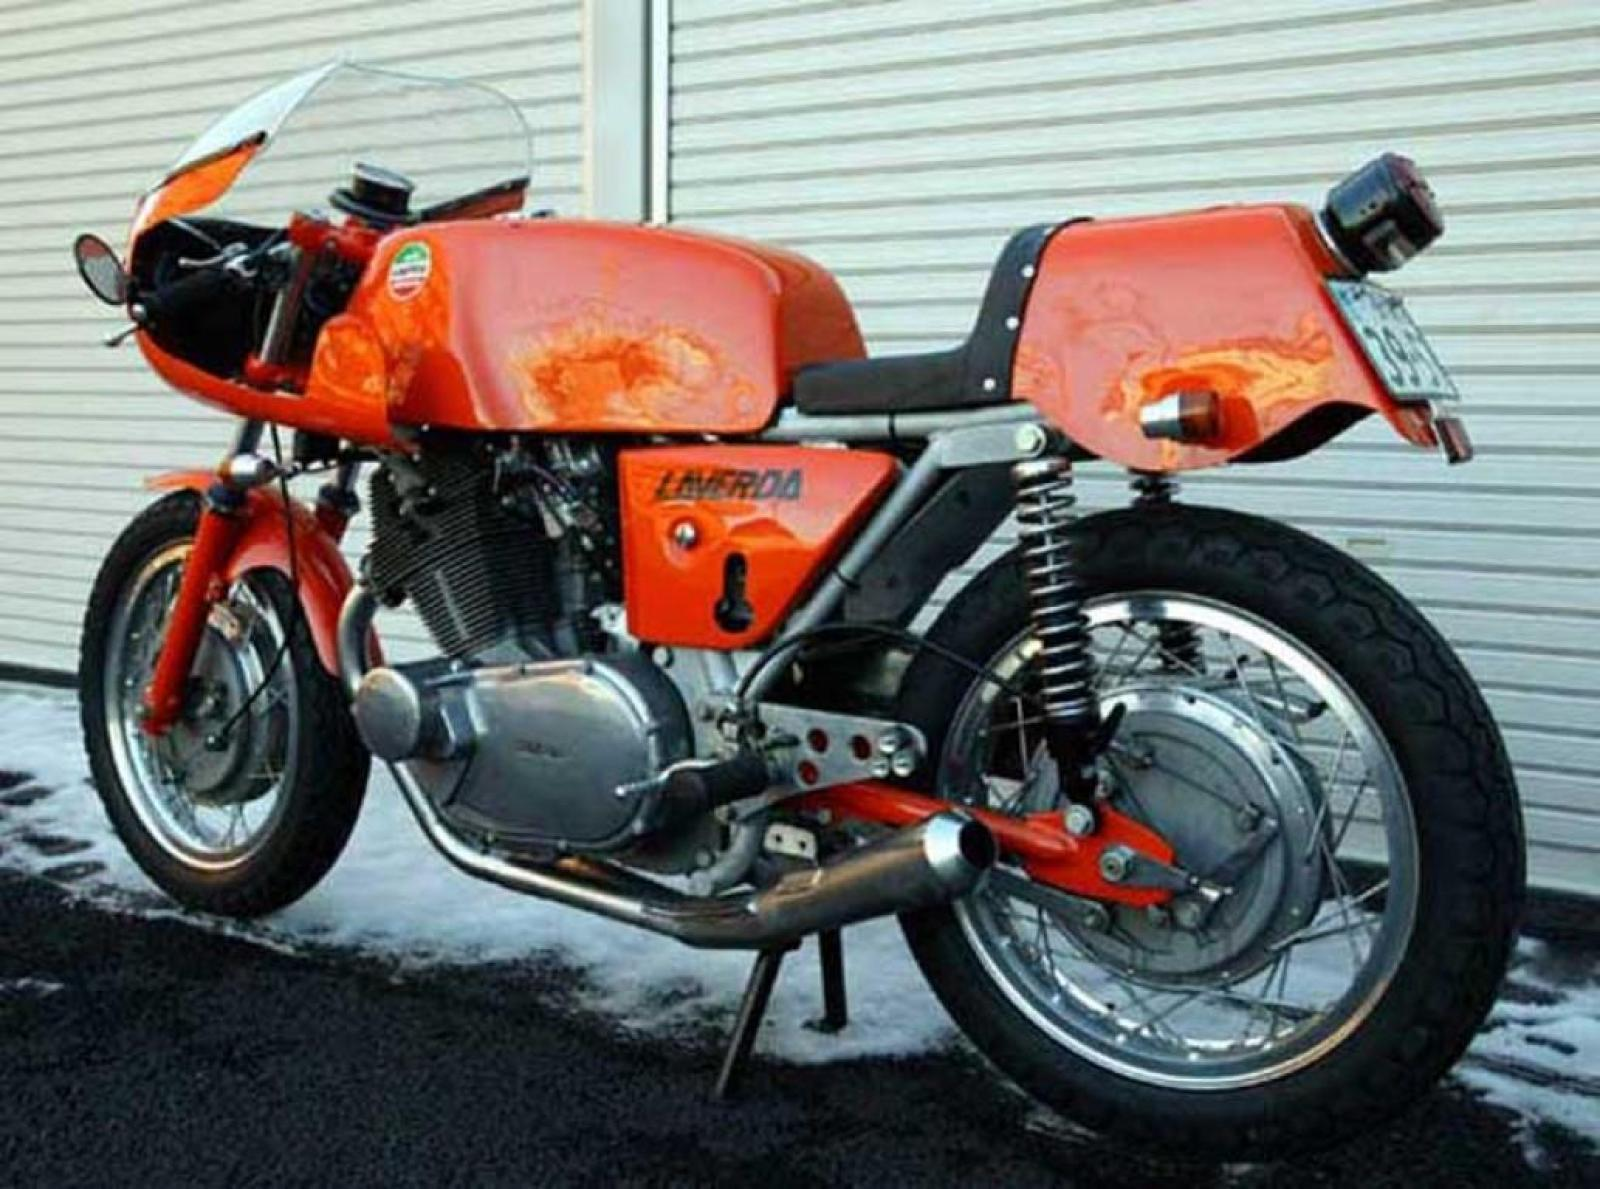 Laverda 600 SFC (reduced effect) #1